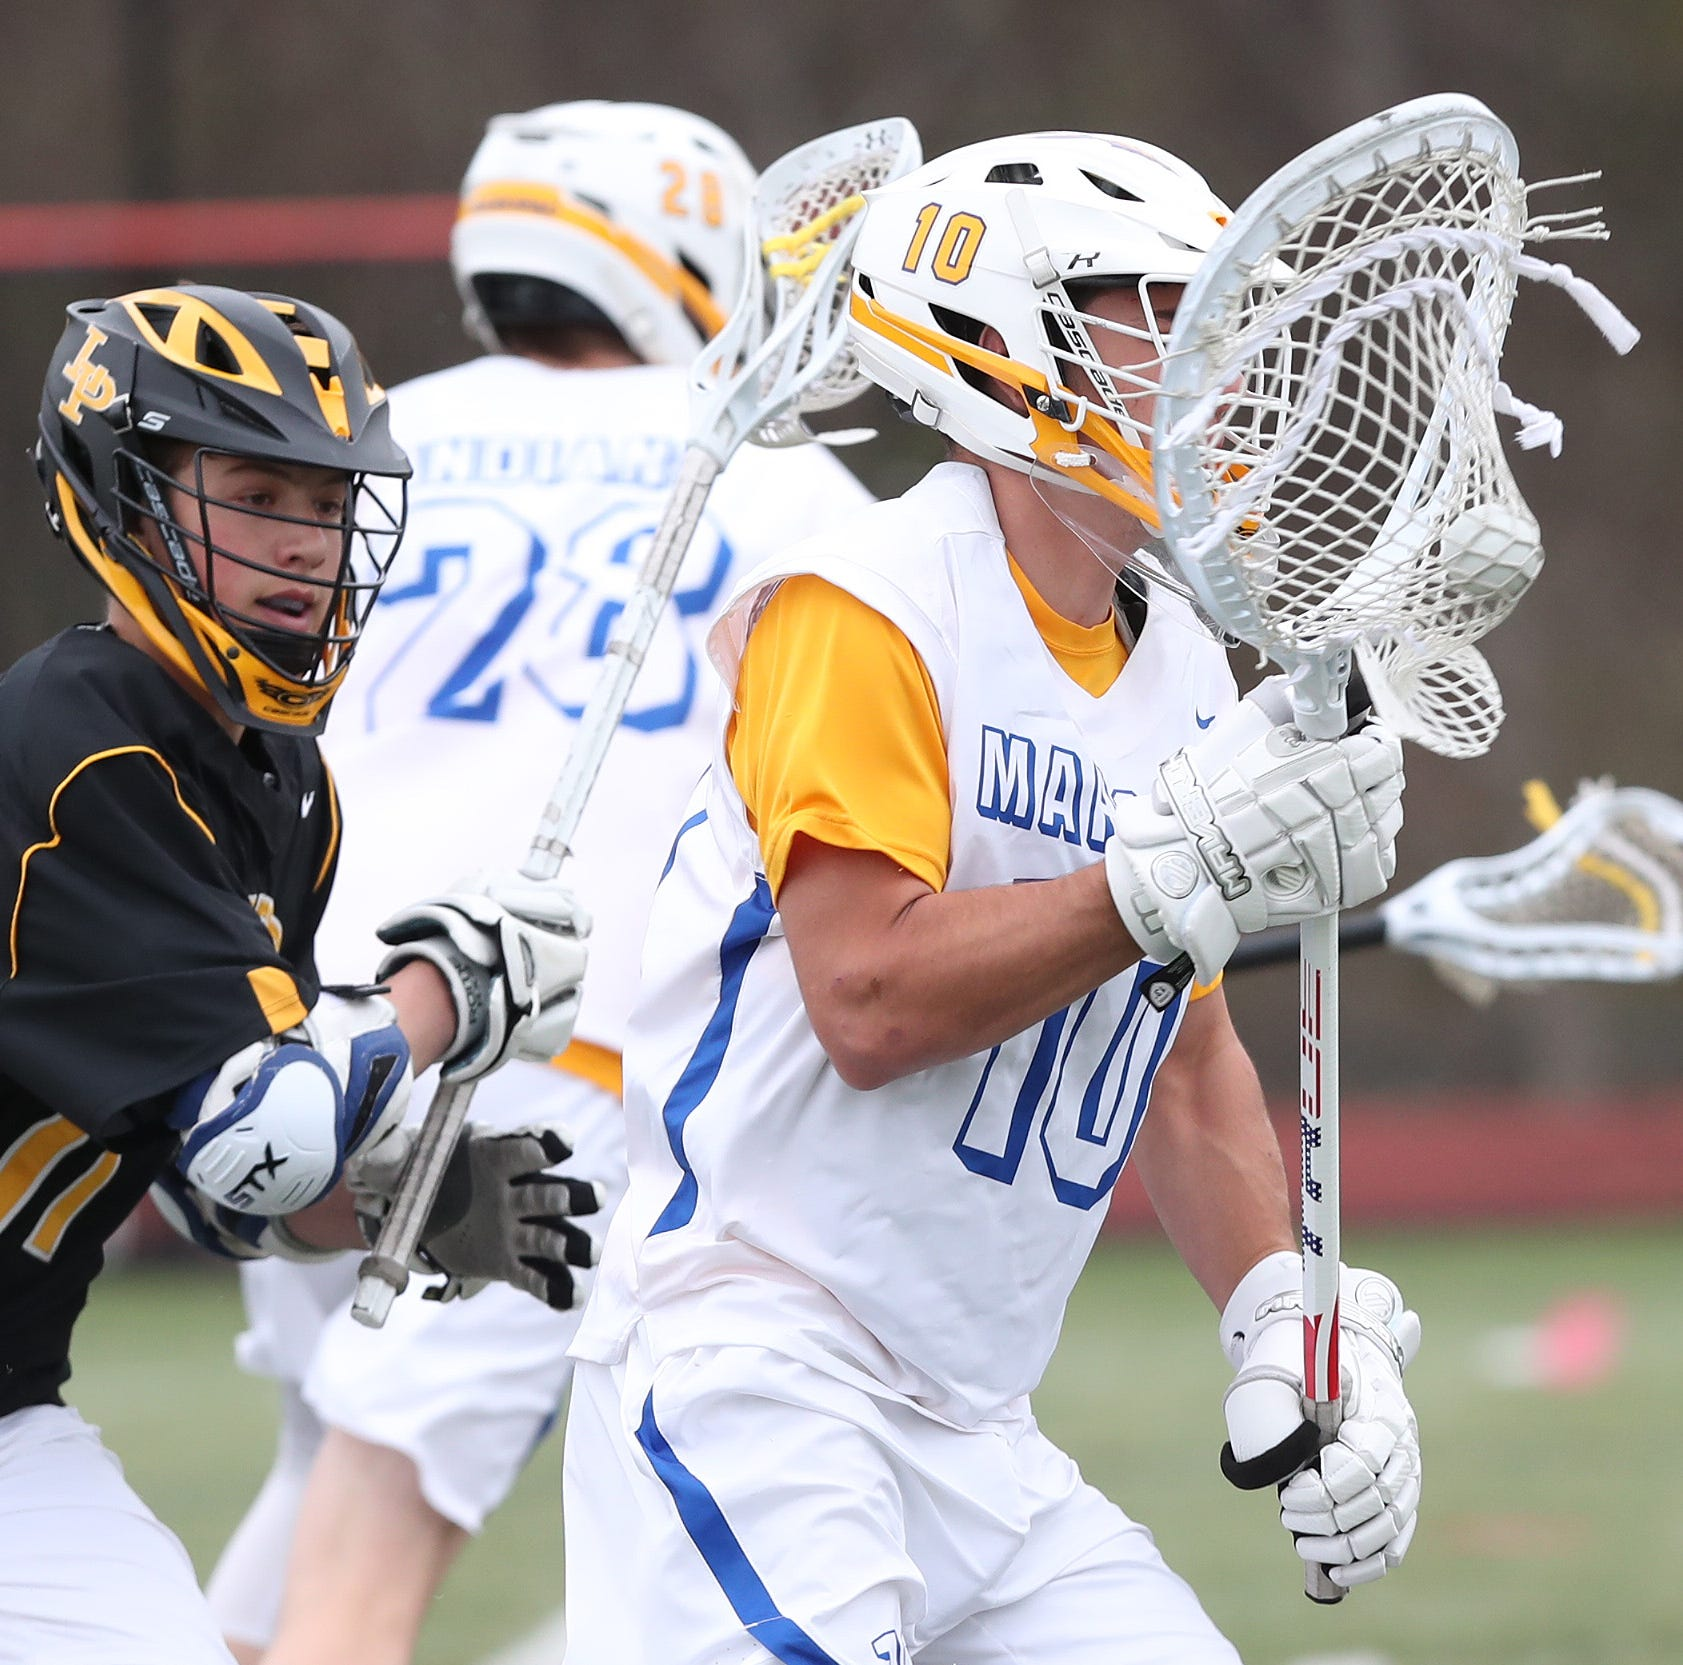 Boys lacrosse: Vote now for the player of the week